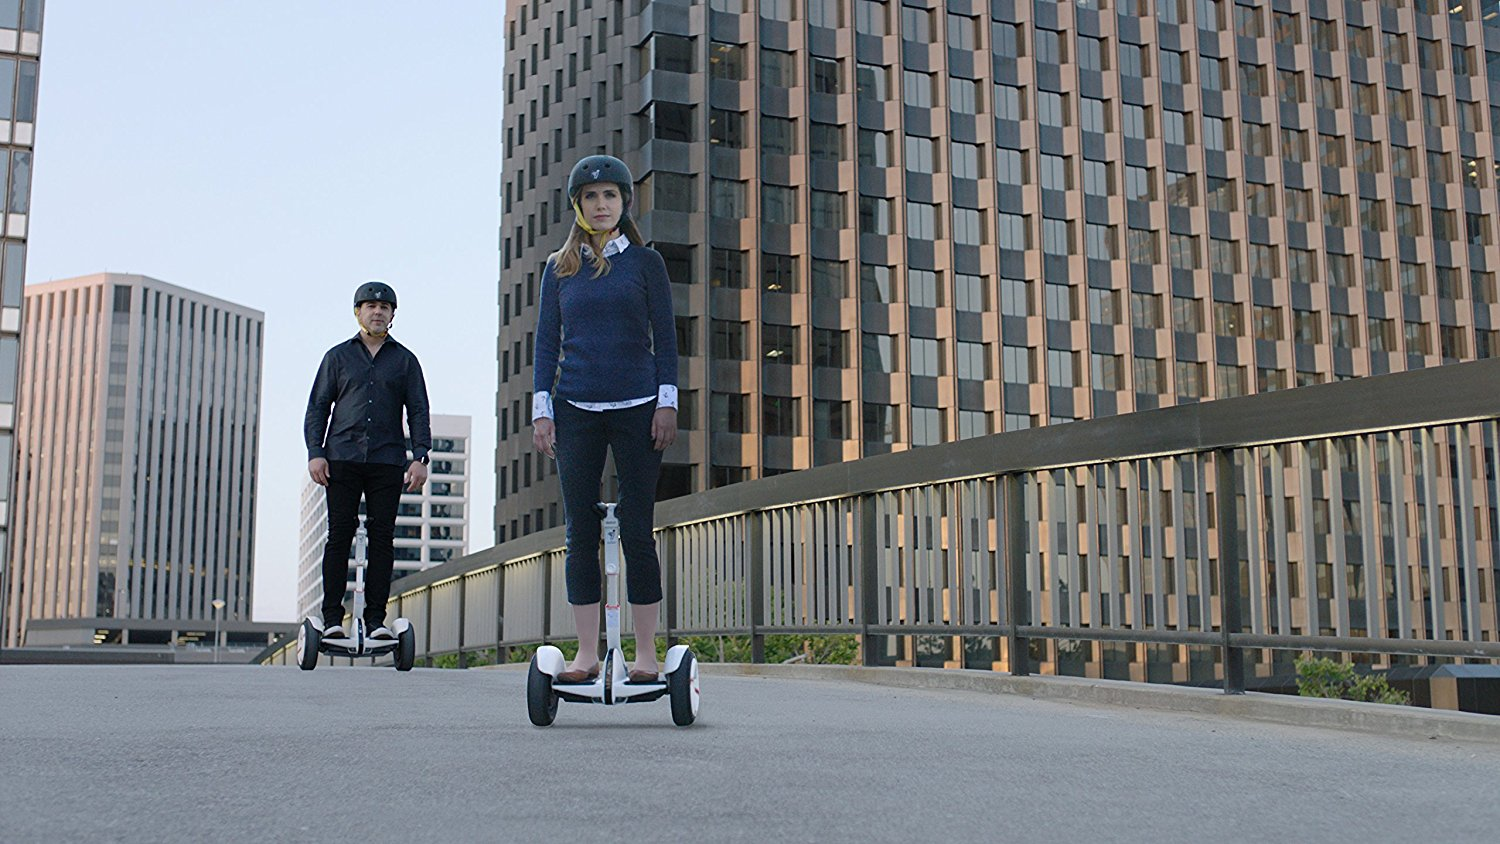 riding hoverboard